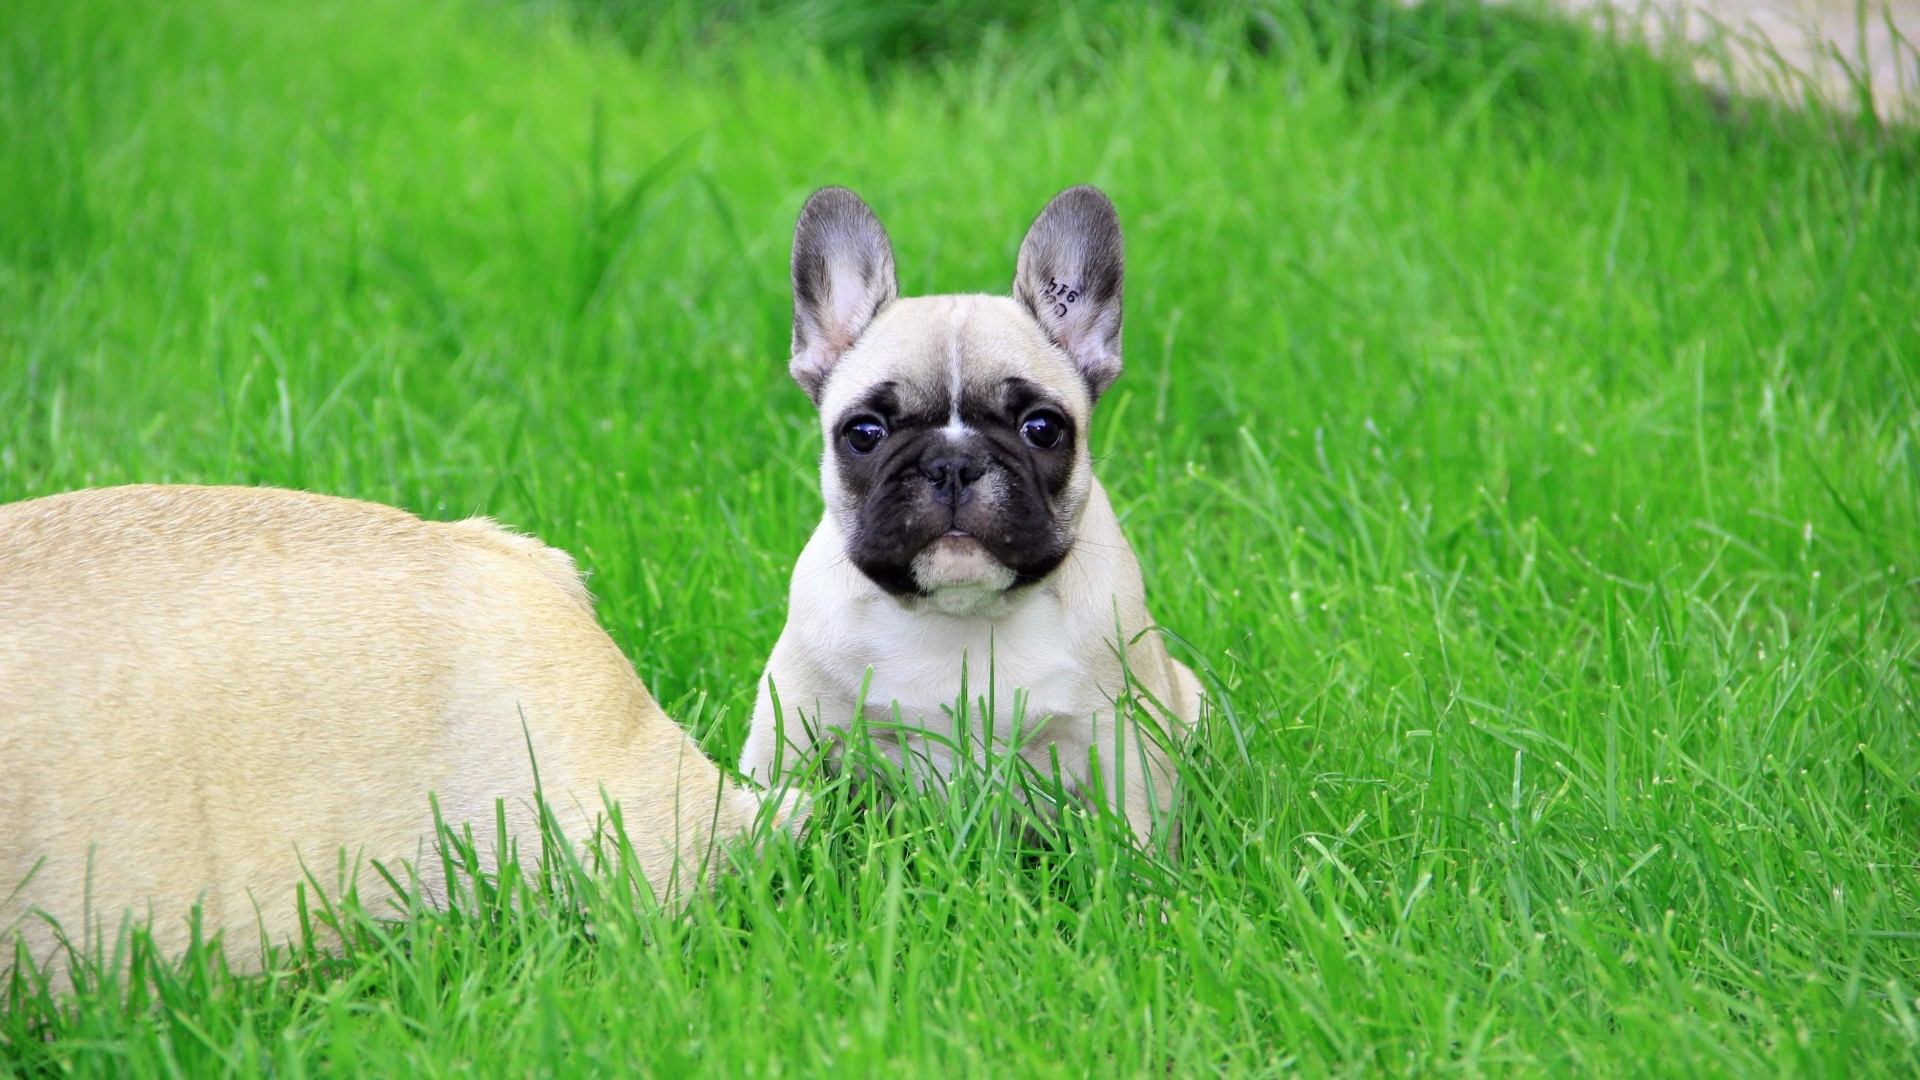 French Bulldog Puppy Wallpaper for Desktop 1920x1080